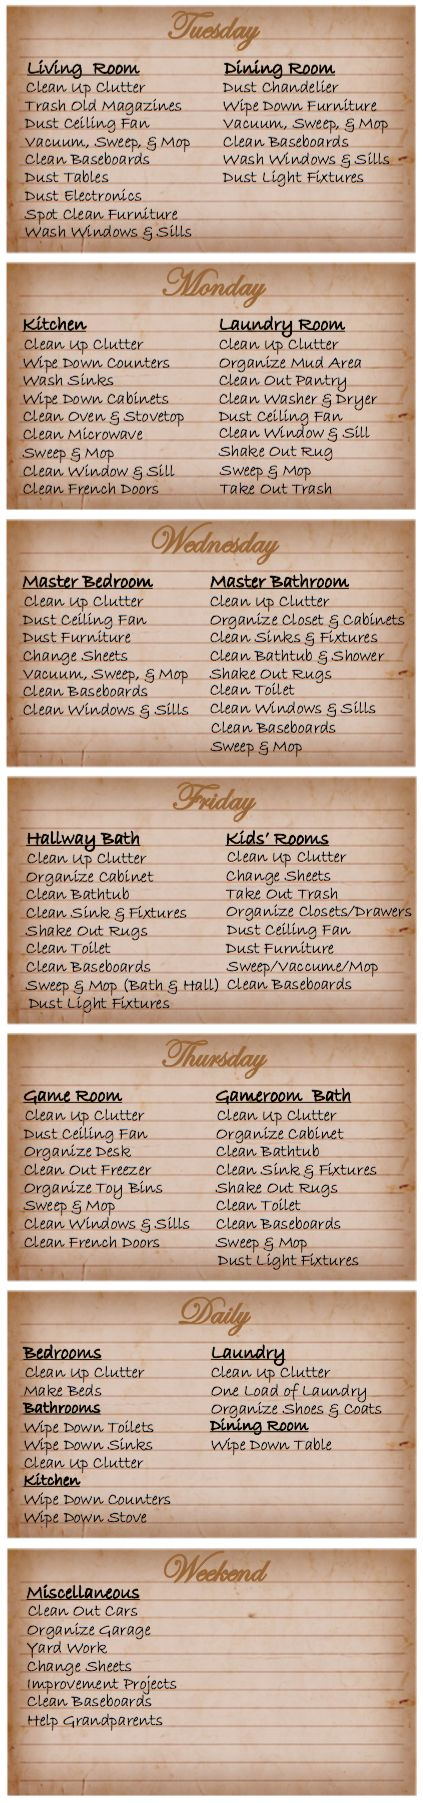 FREE printable house cleaning schedule from Blessed Messes. Download at the website.